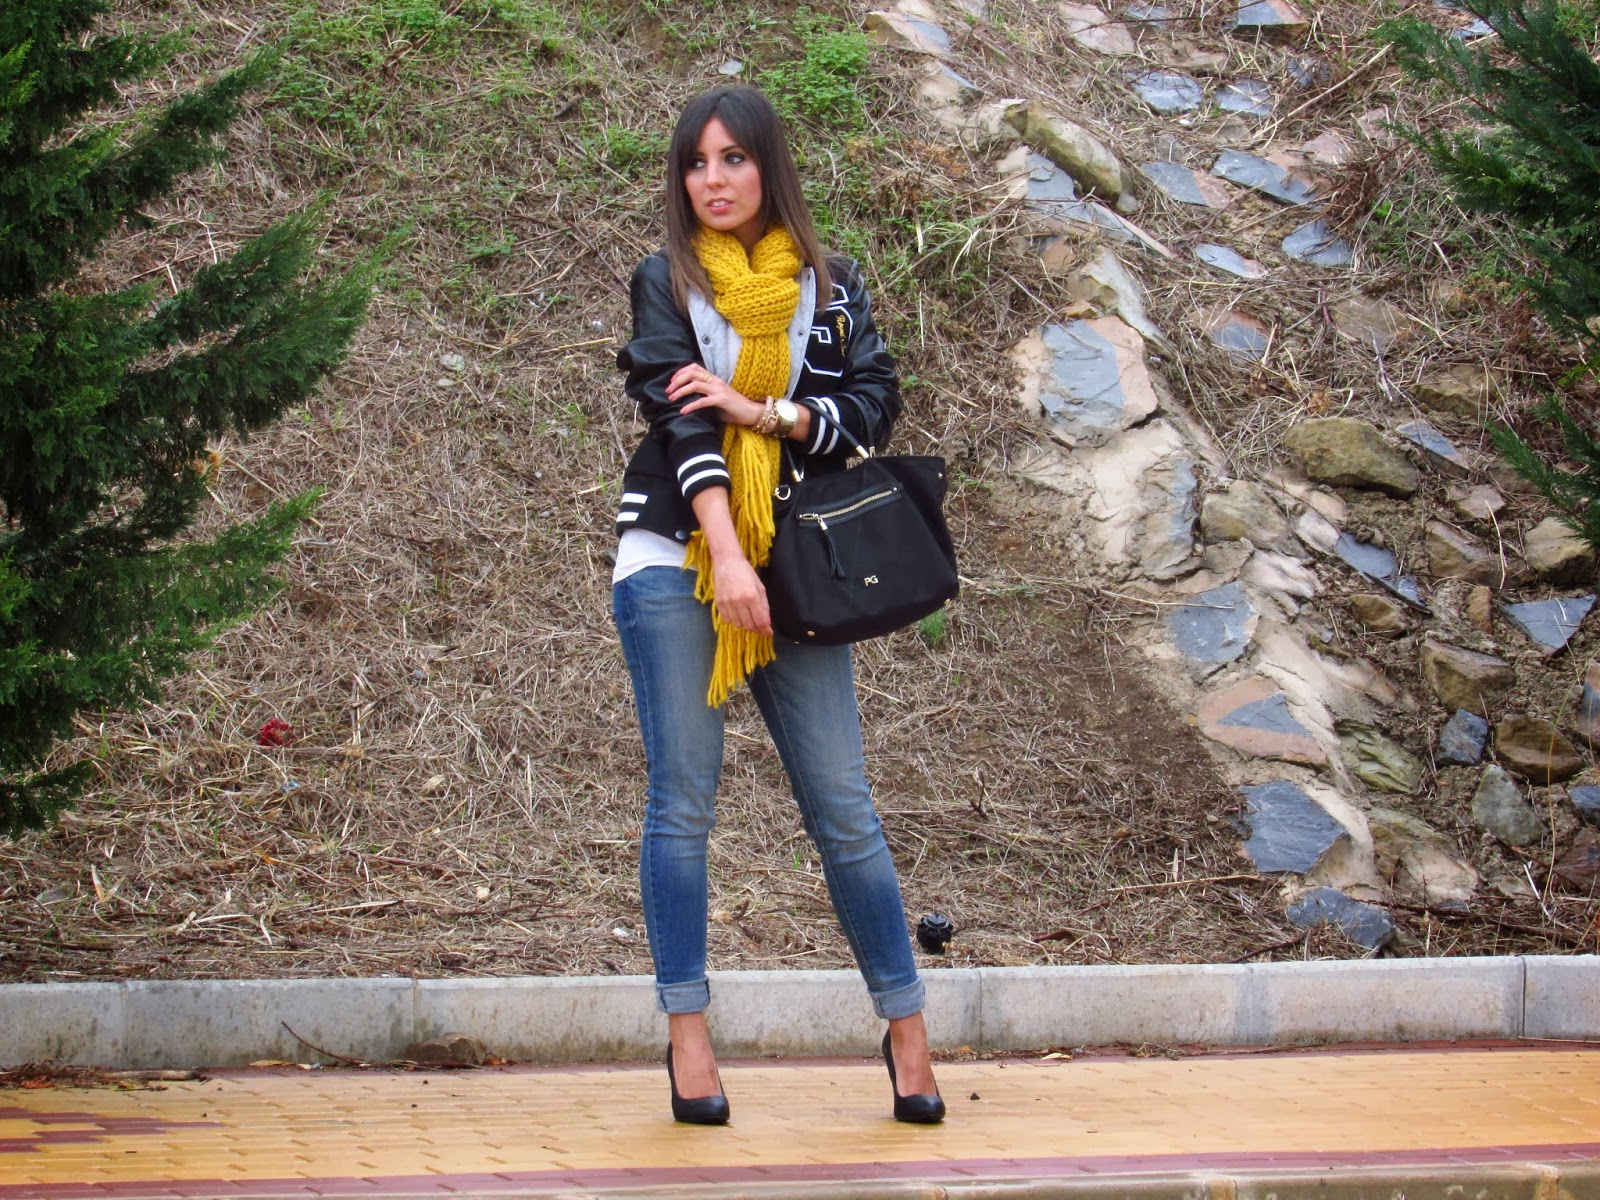 cristina style fashion blogger malagueña street style ootd outfit look teenvogue inspiration